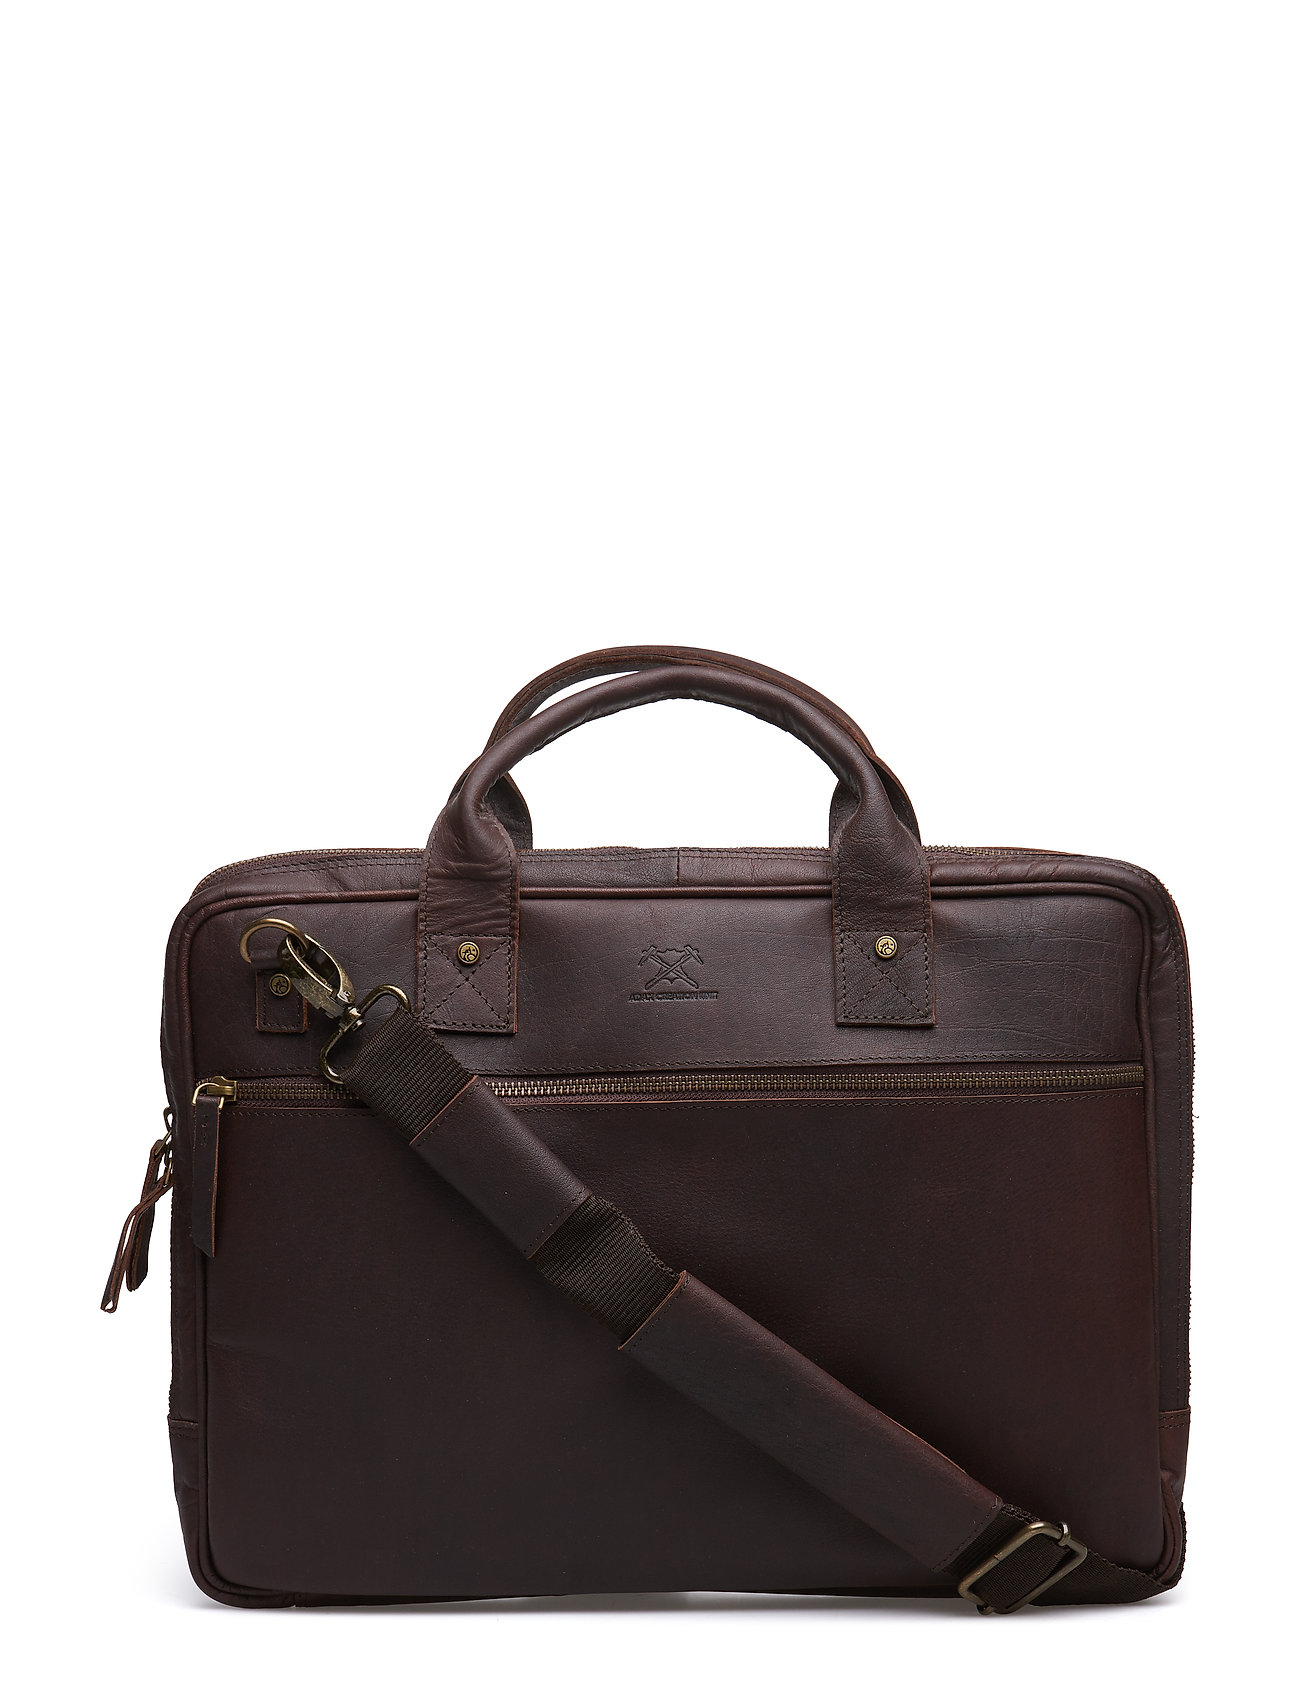 Adax CPH - BROWN